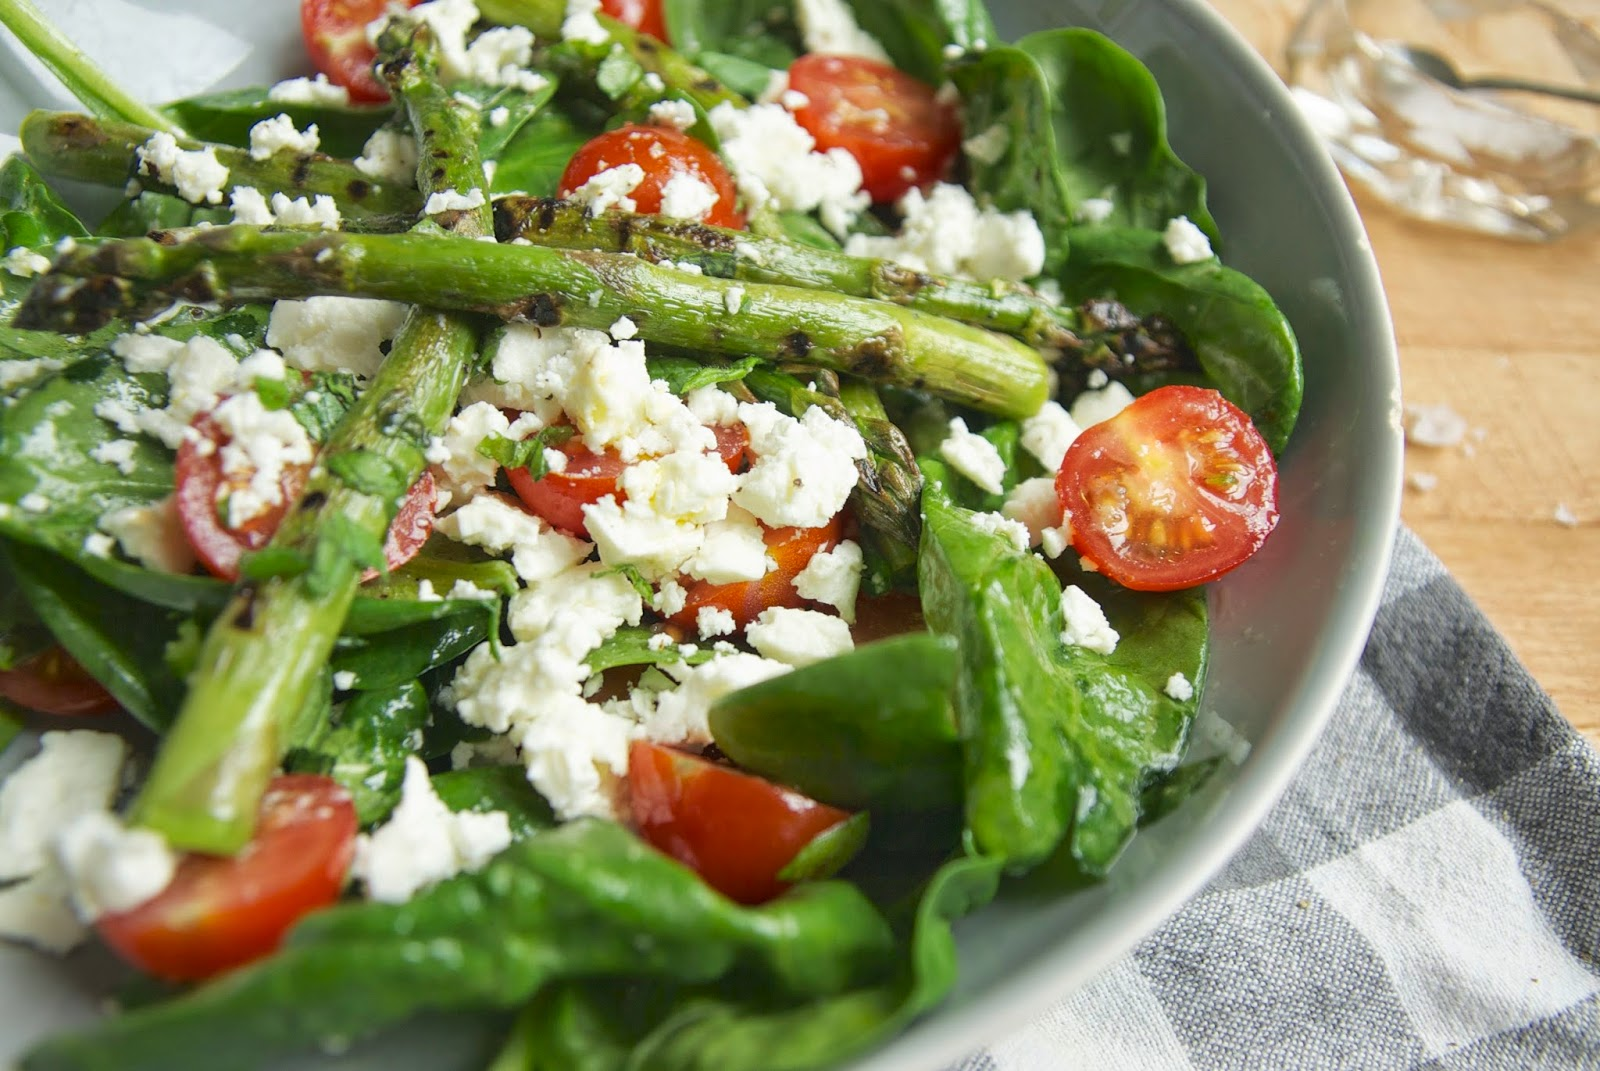 Griddled asparagus with feta and tomatoes